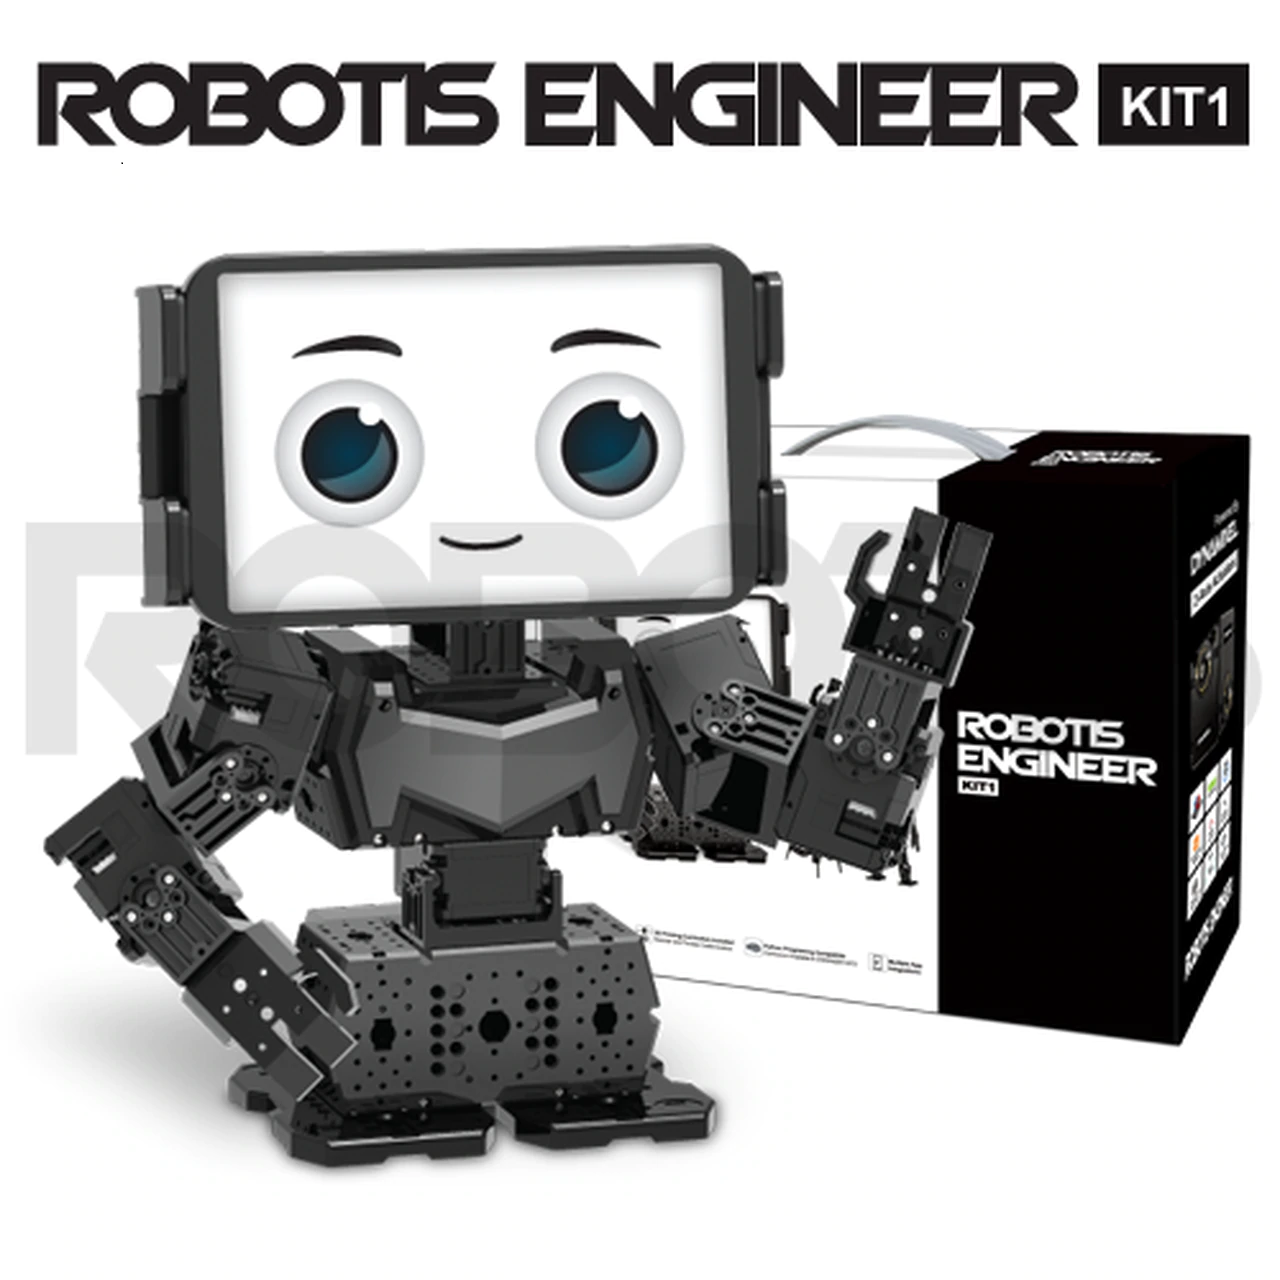 ROBOTIS Engineer